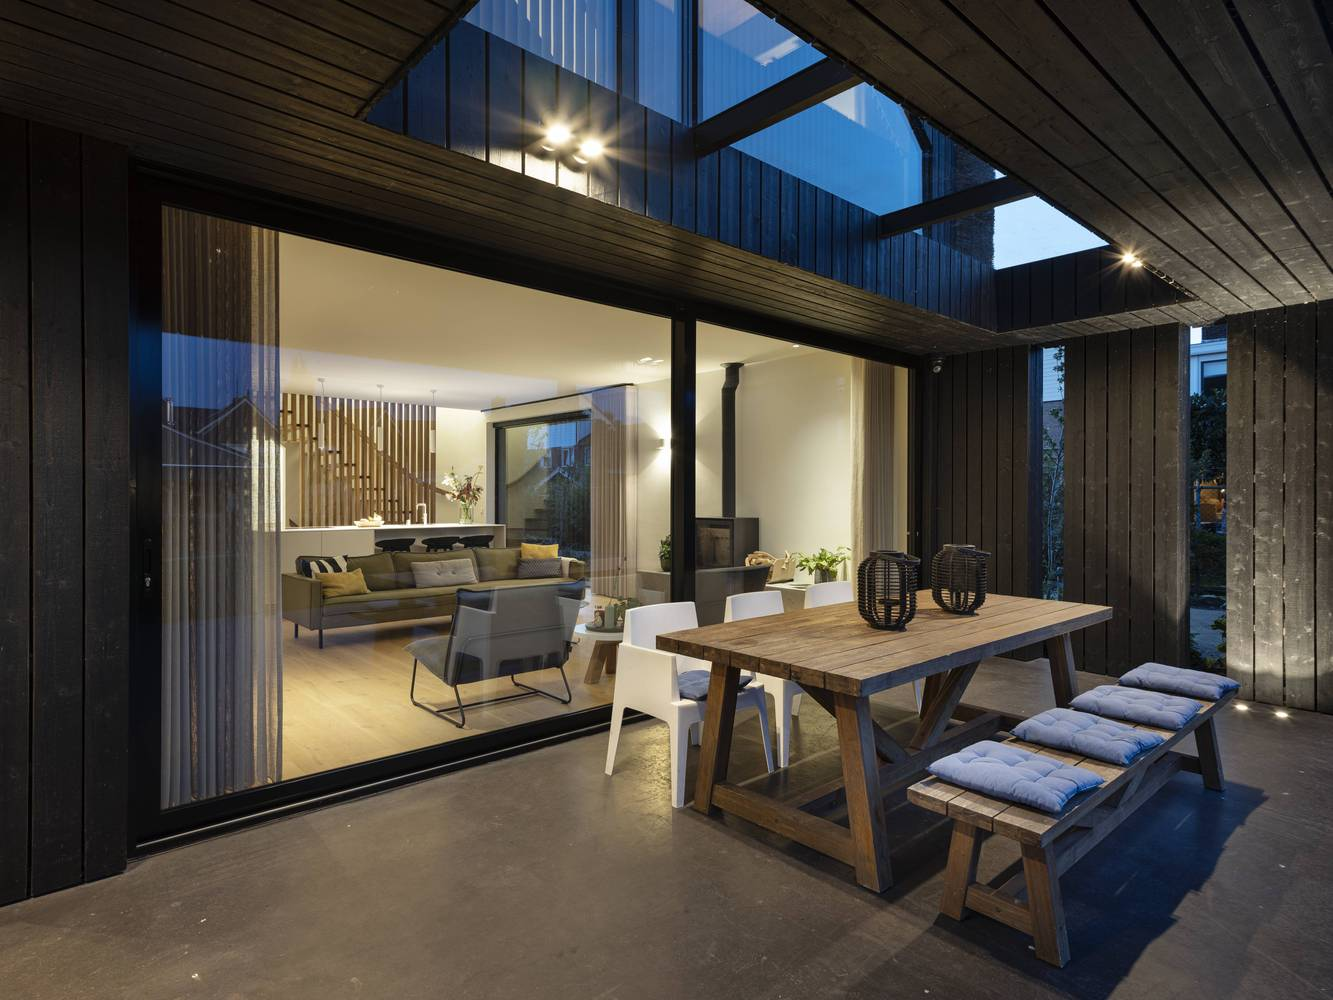 Skylights into the roof of the deck allow it to be bathed in natural light